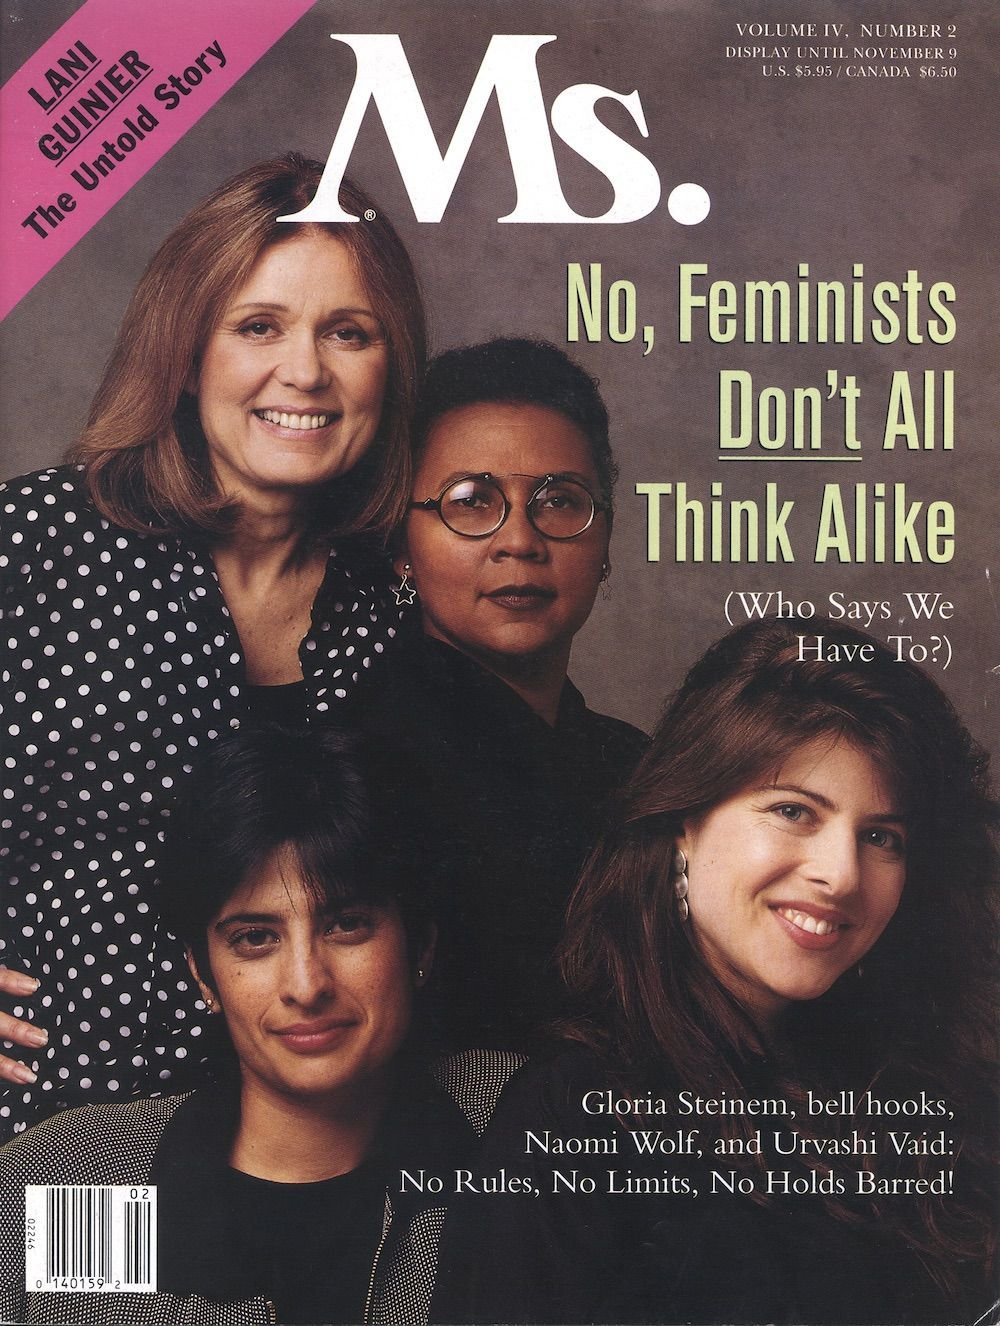 Breaking: Feminists don't all think alike. Gloria Steinem, bell hooks, Naomi  Wolf and Urvashi Vaid speak out in this issue of Ms.